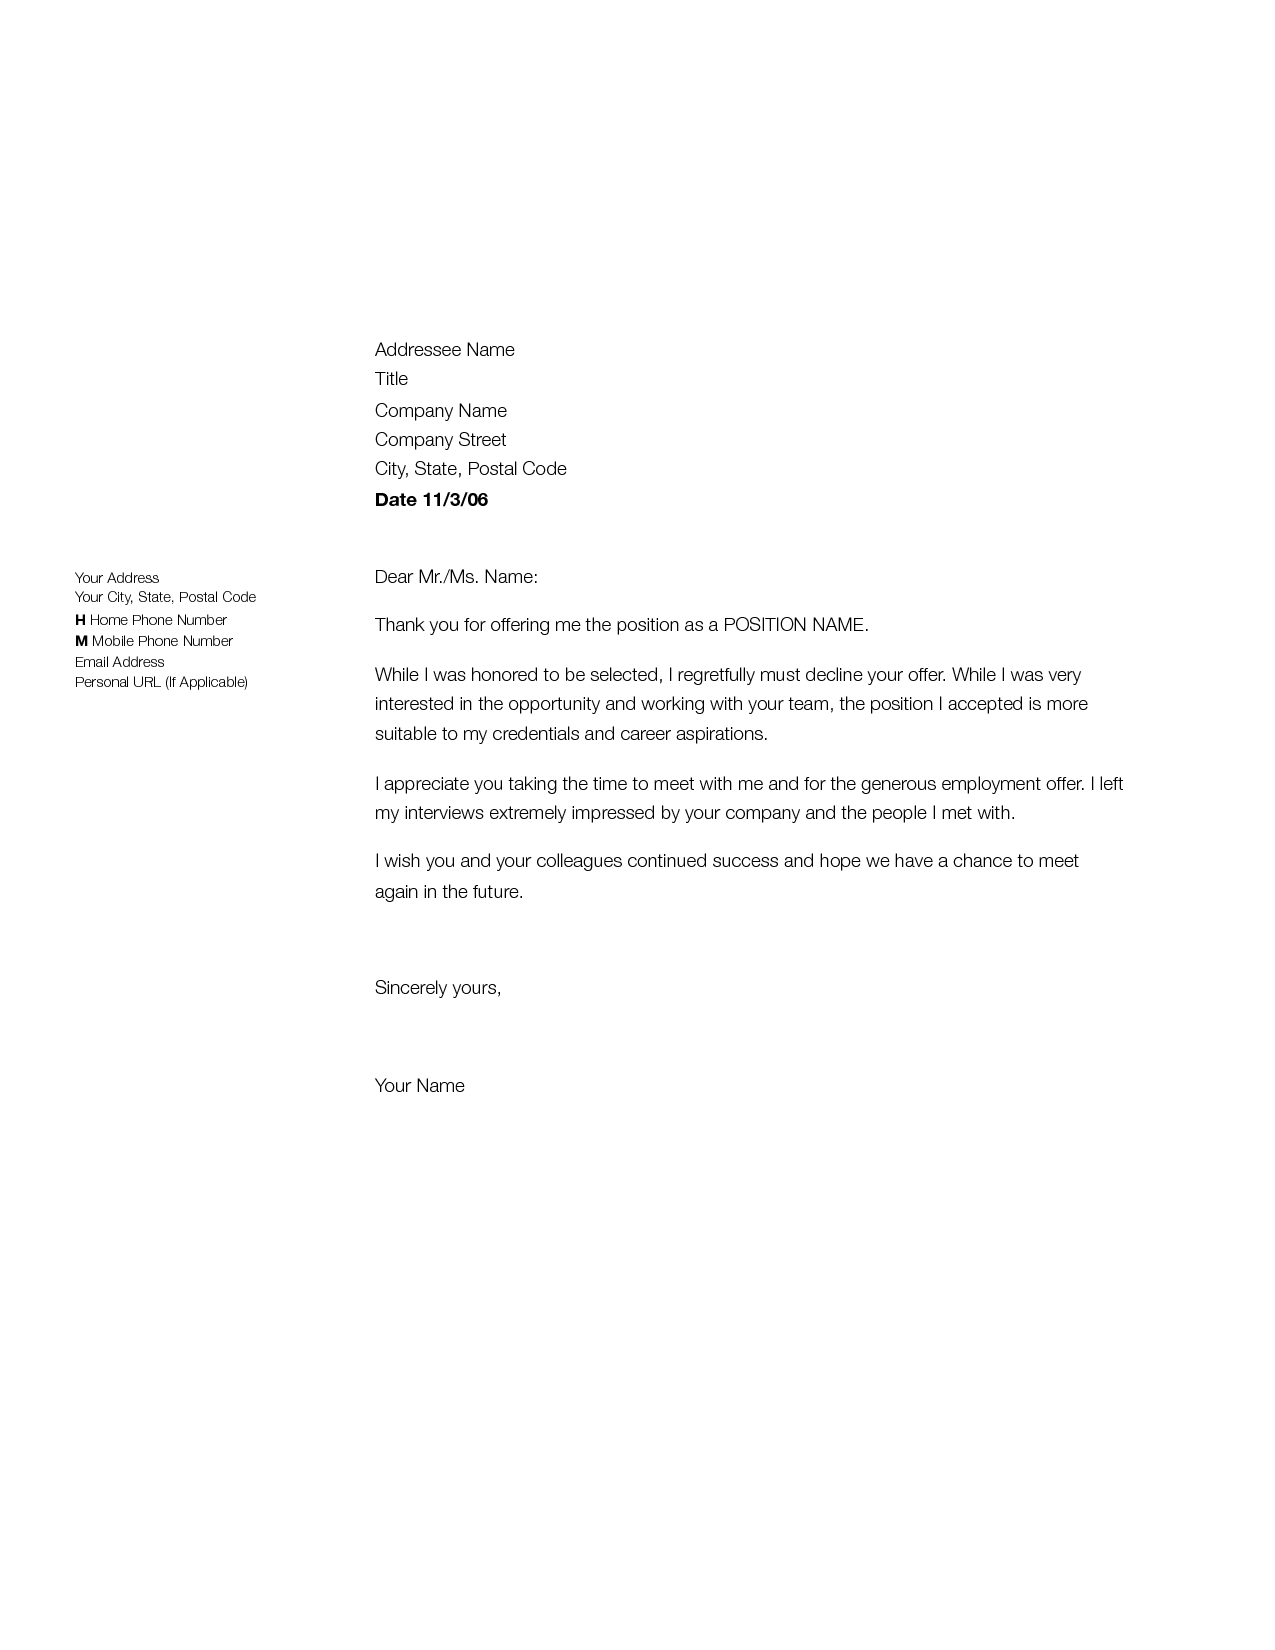 Job decline letter sample employment rejection letter to let an job decline letter sample employment rejection letter to let an employer know that you are spiritdancerdesigns Choice Image